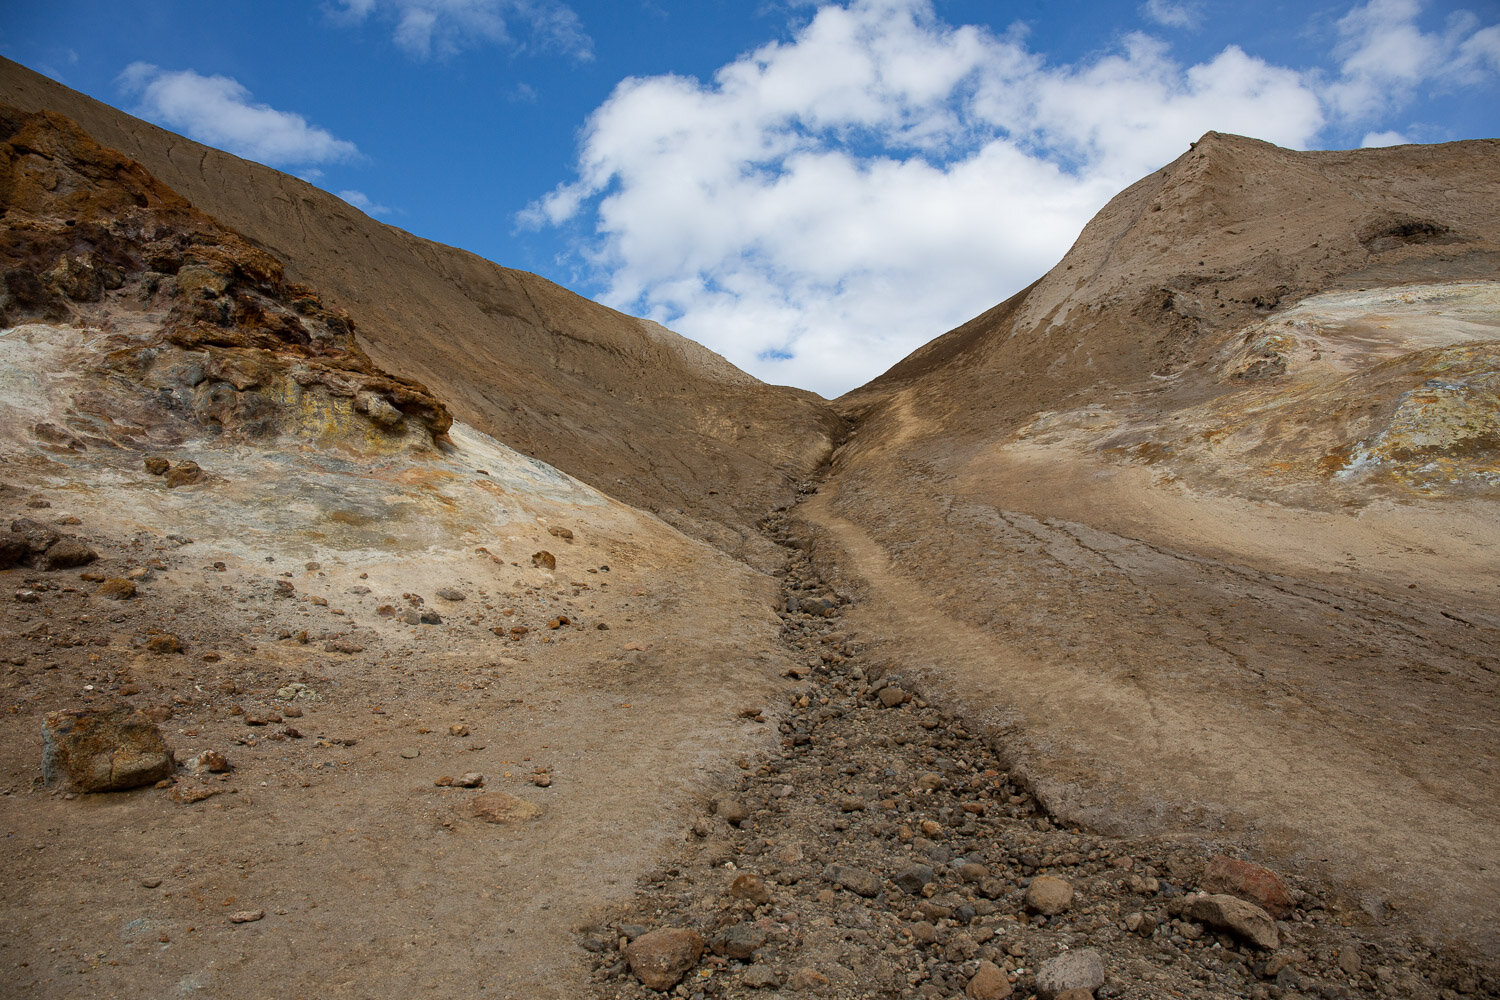 The path into the crater